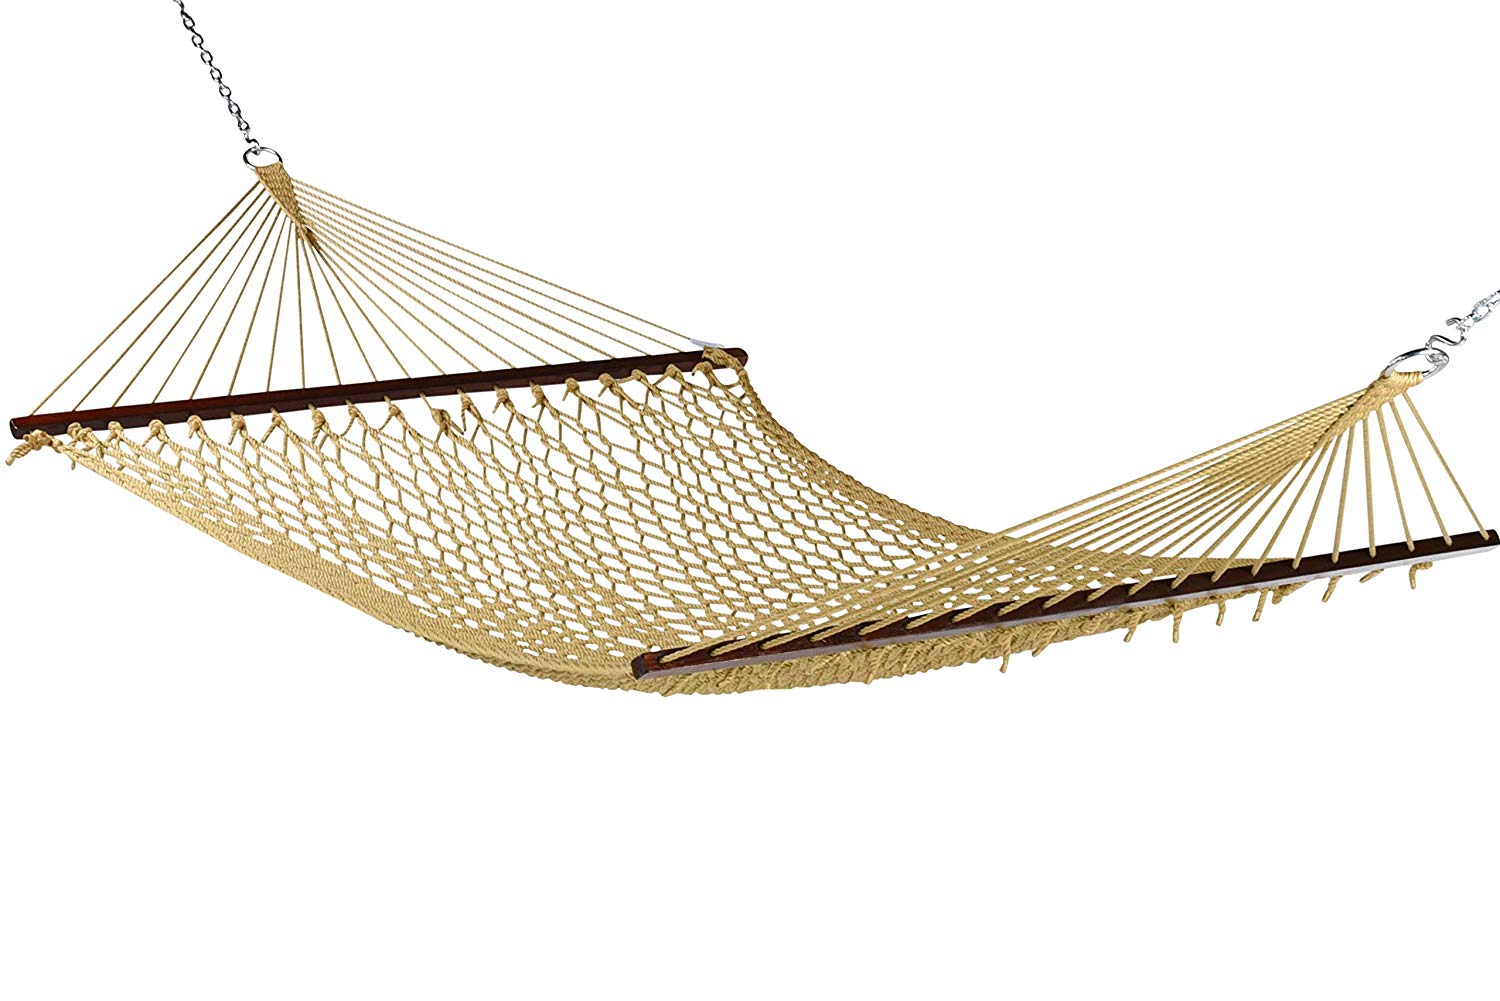 Top 10 Best Hammocks With Stand 2021 [Portable] Reviews 10